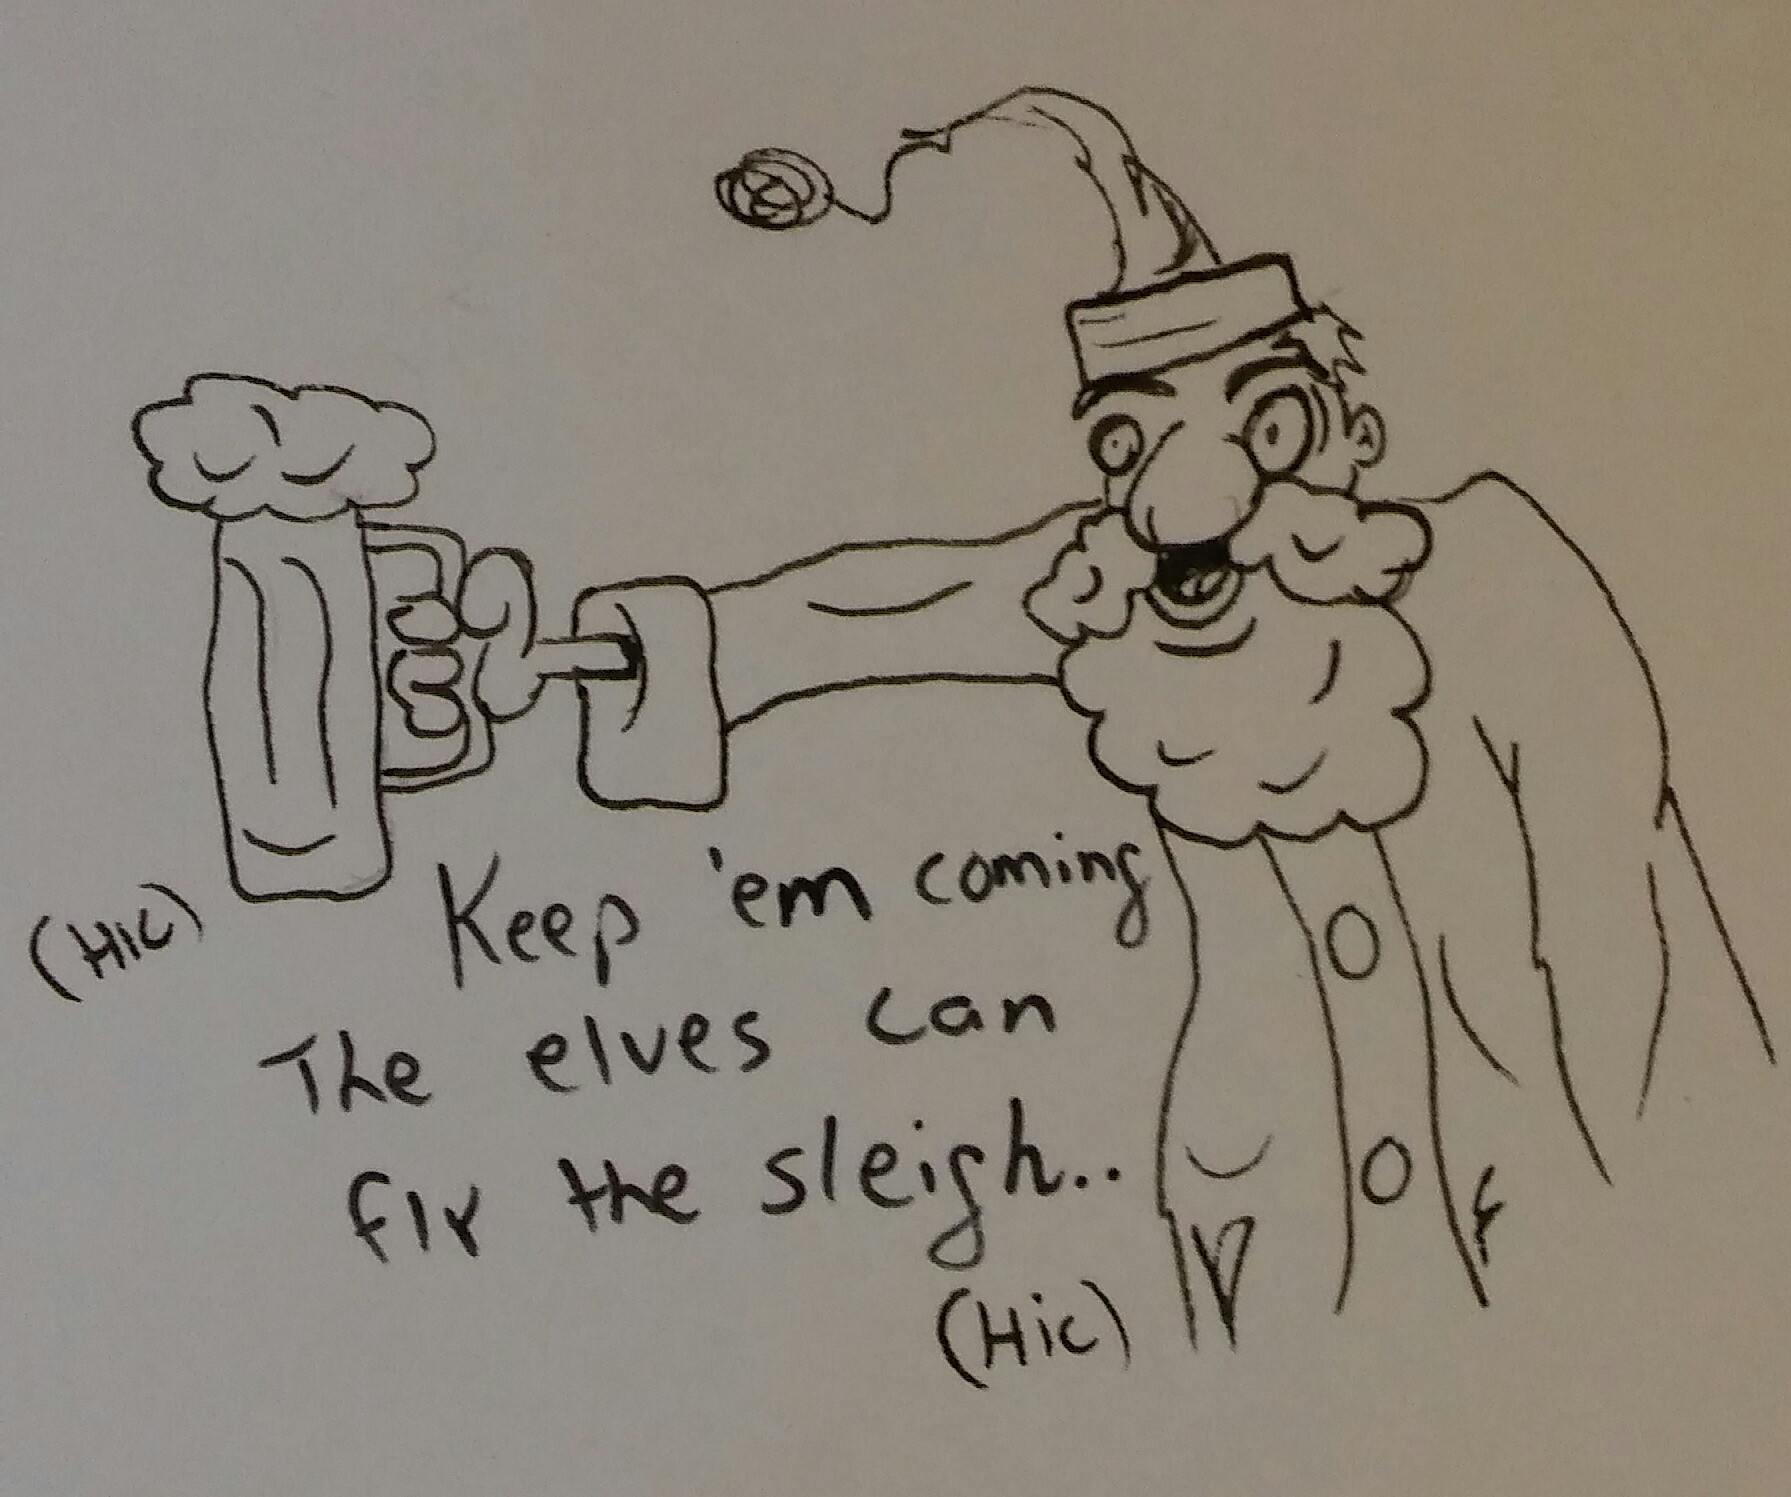 Whos flying the sleigh?